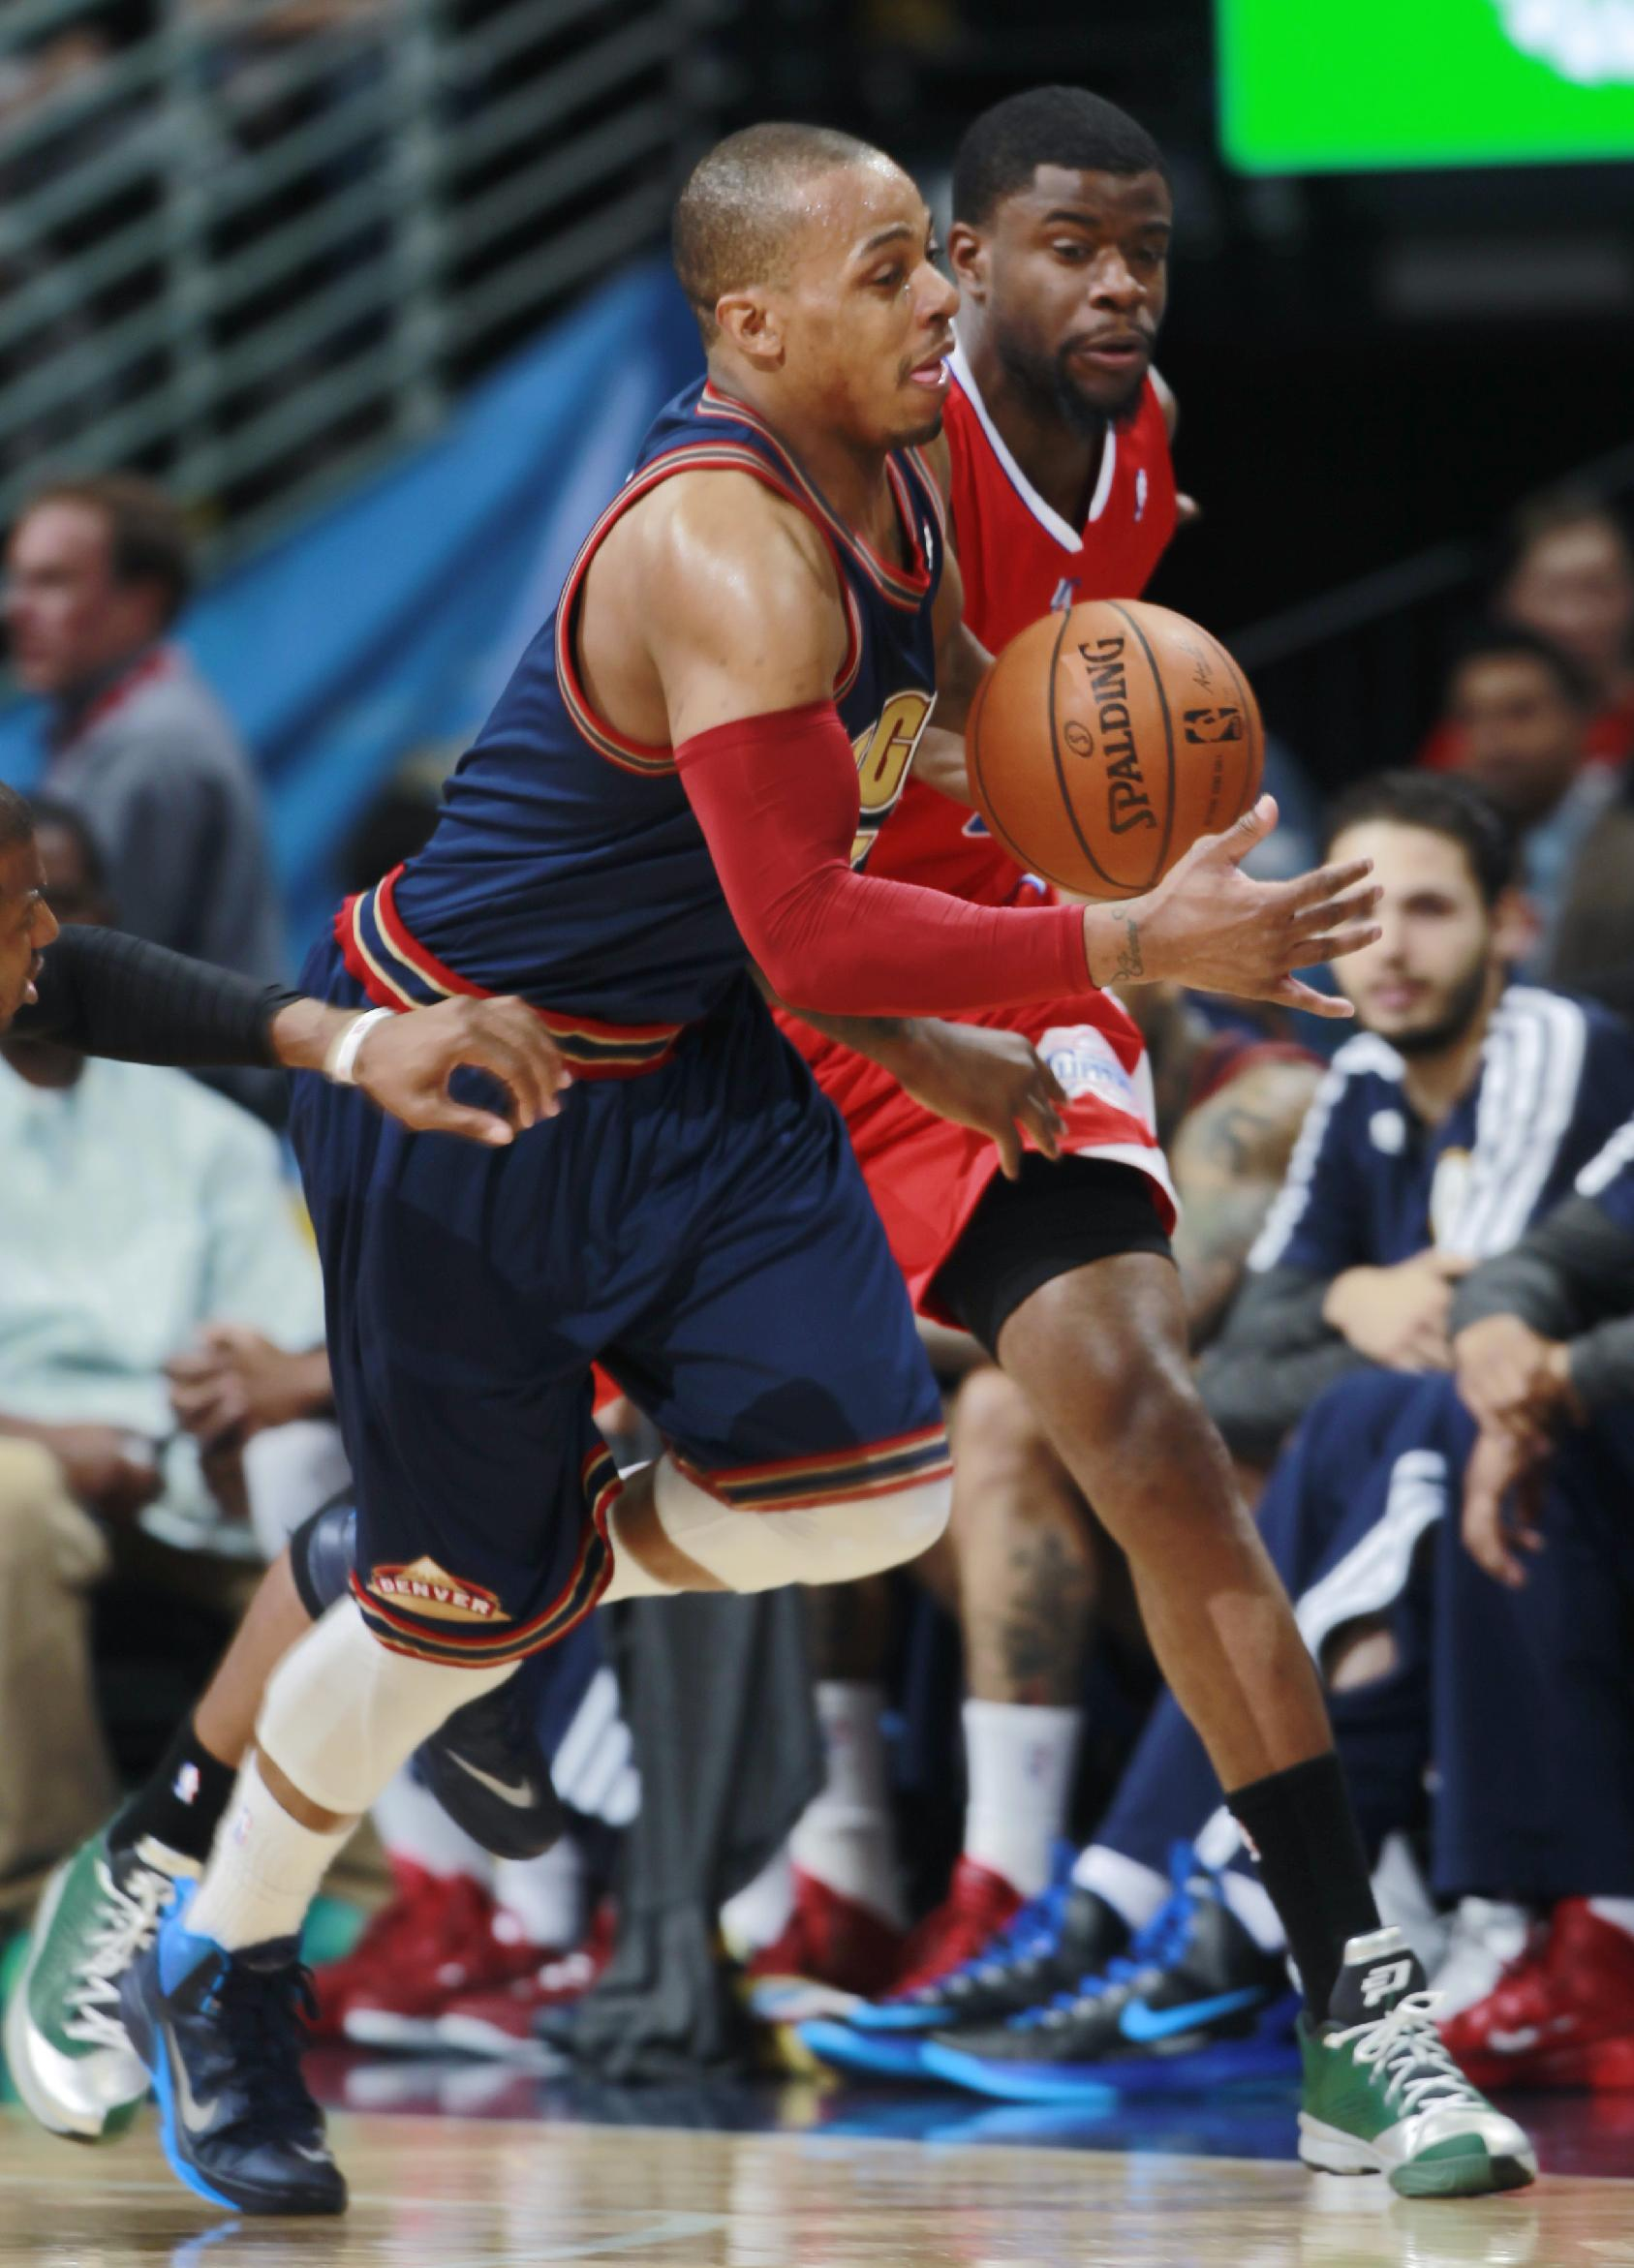 Denver Nuggets guard Randy Foye, front, picks up loose ball in front of Los Angeles Clippers guard Reggie Bullock in the third quarter of the Nuggets' 110-100 victory in an NBA basketball game in Denver on Monday, March 17, 2014